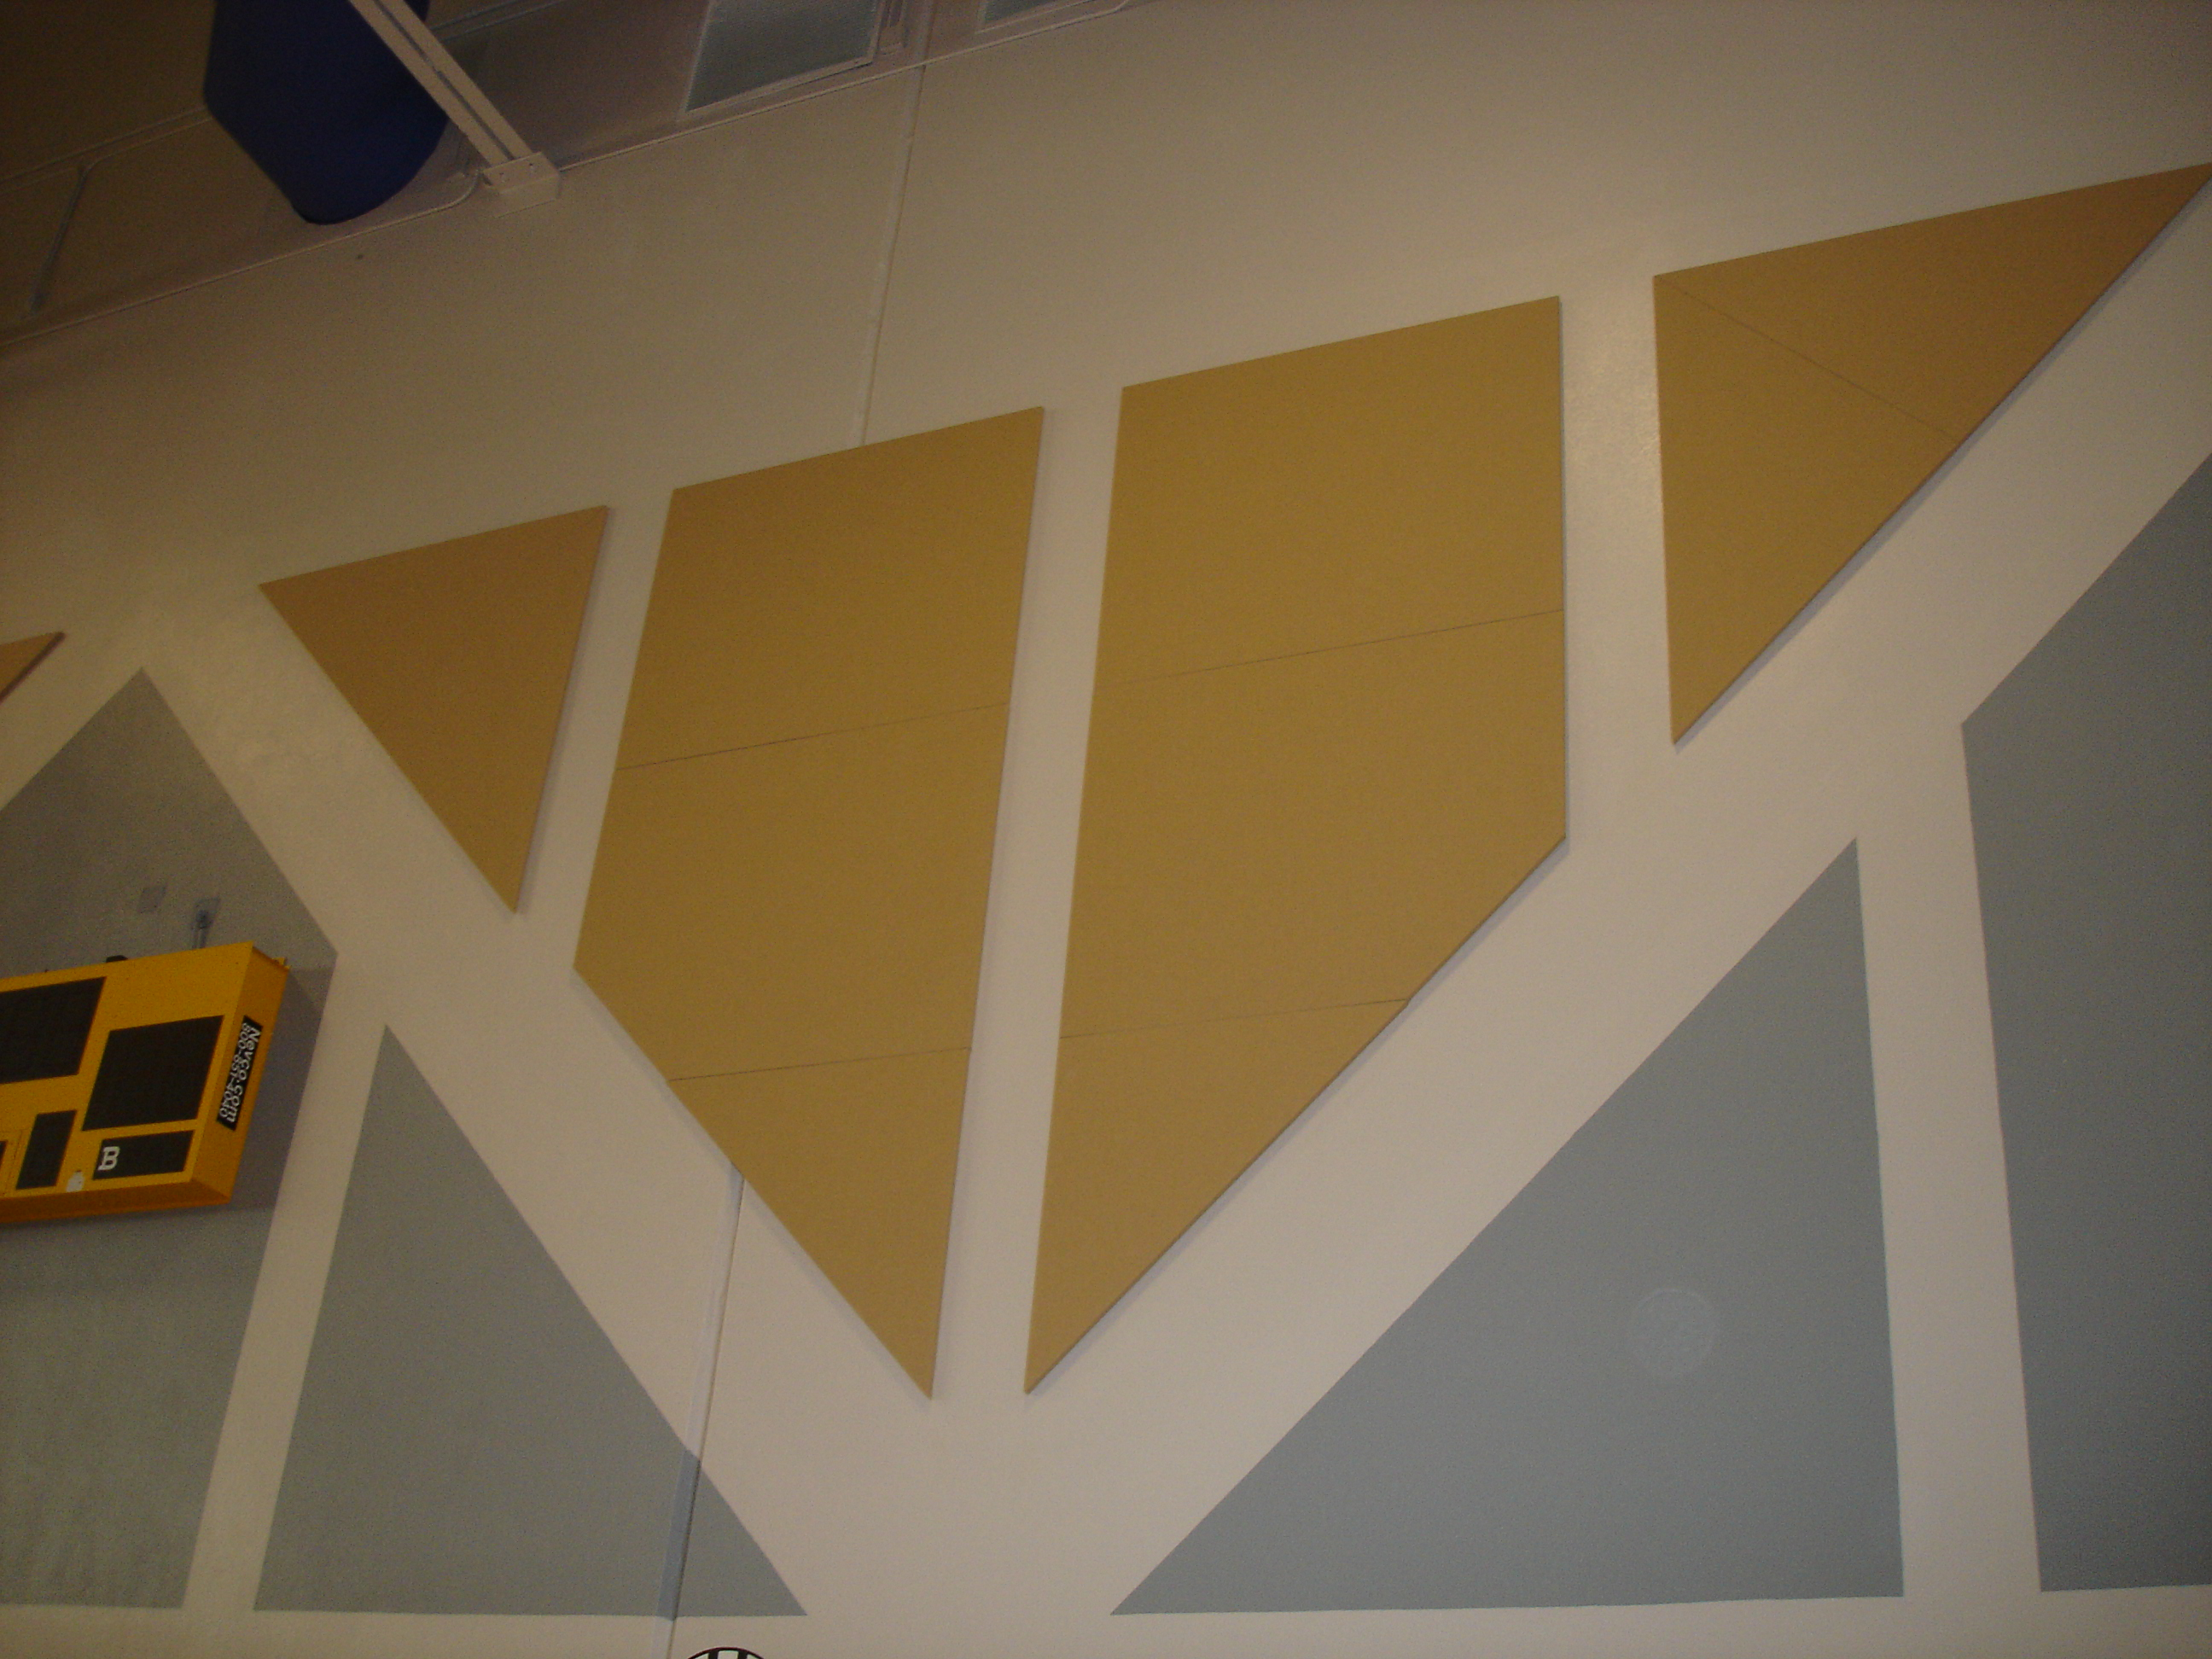 Image of: Custom Soundproof wall panels